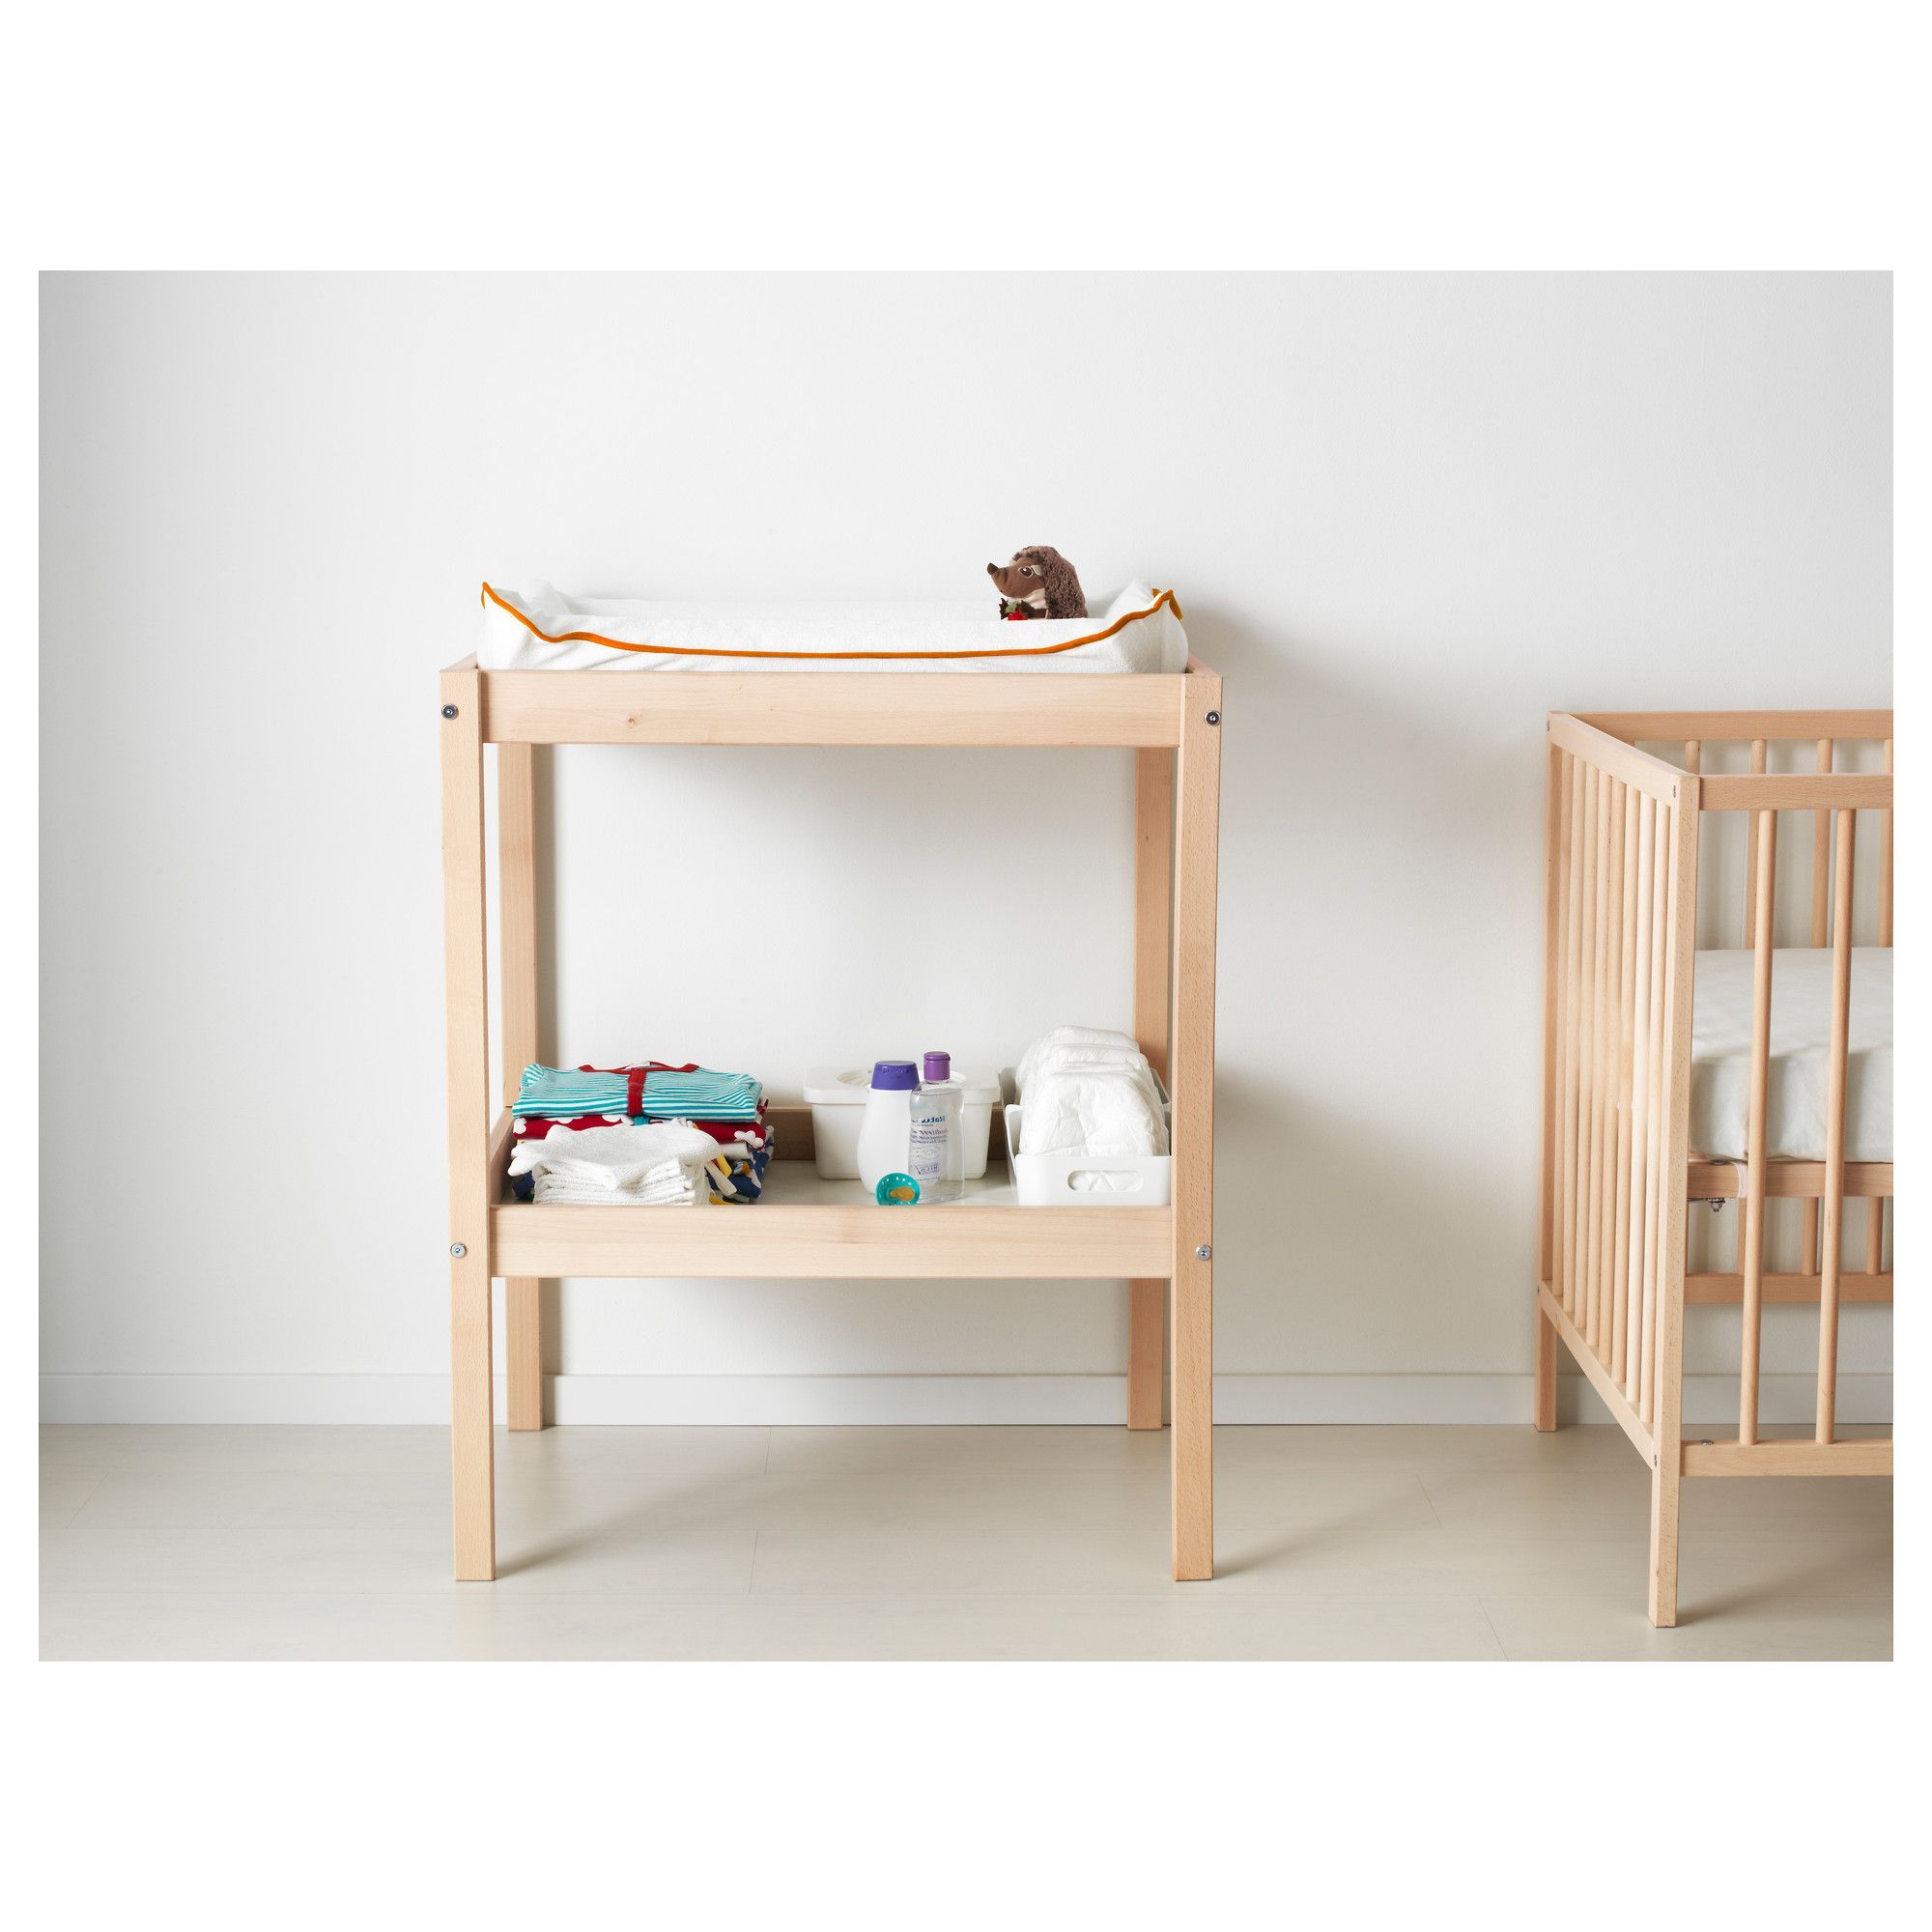 depot furniture for twin excerpt rug decoration cot room us curtains cupboard painting boy gl bathroom interior ideas new and home windows ikea clearance dolls decor modern toys metal bed r wall sets baby toddler boys kritter gorgeous with budget crib bedroom bedding kids girl